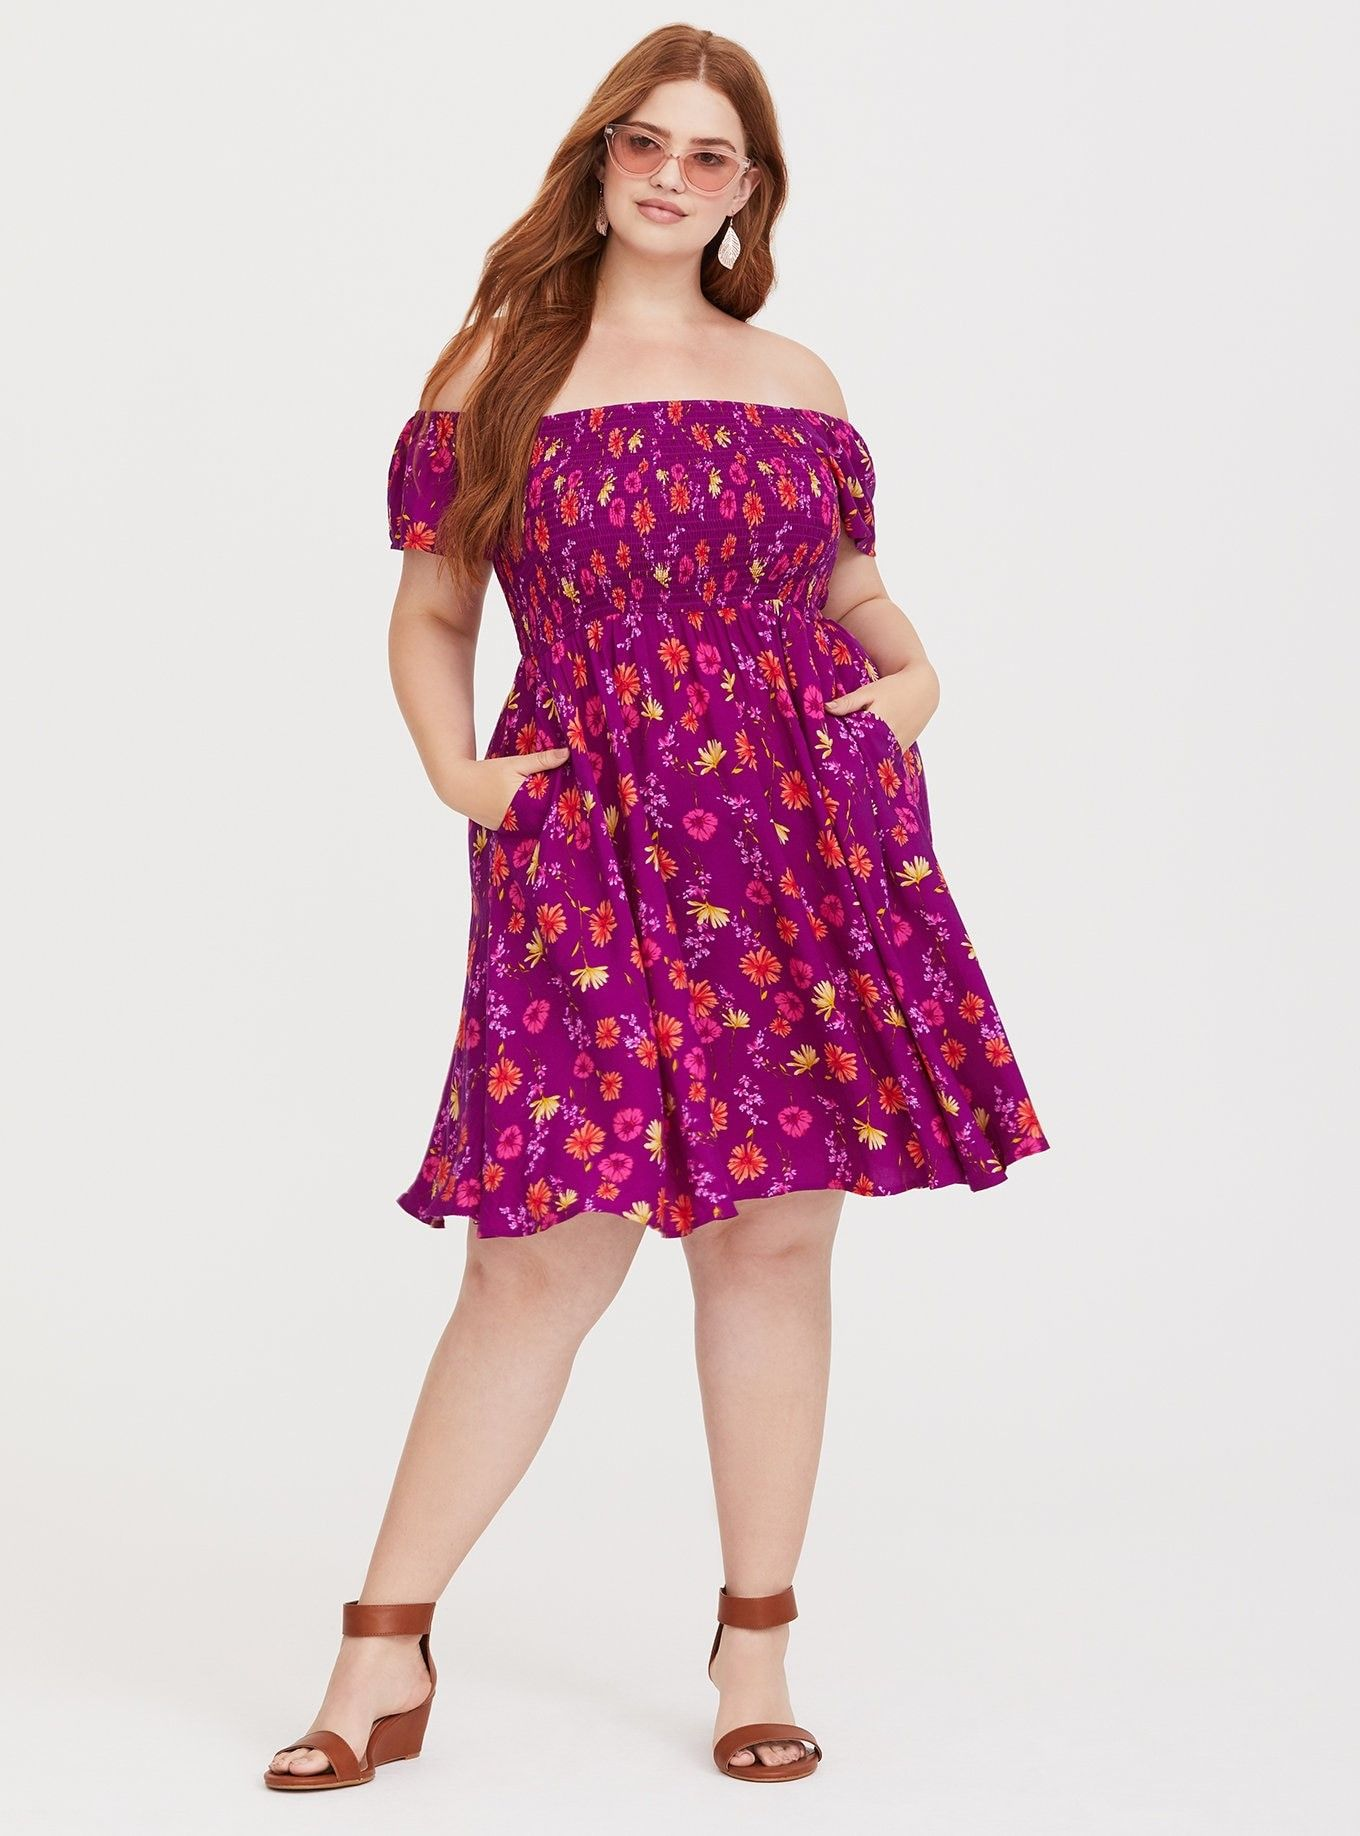 8ec151816d Purple Floral Challis Skater Dress - We love anything pretty and practical